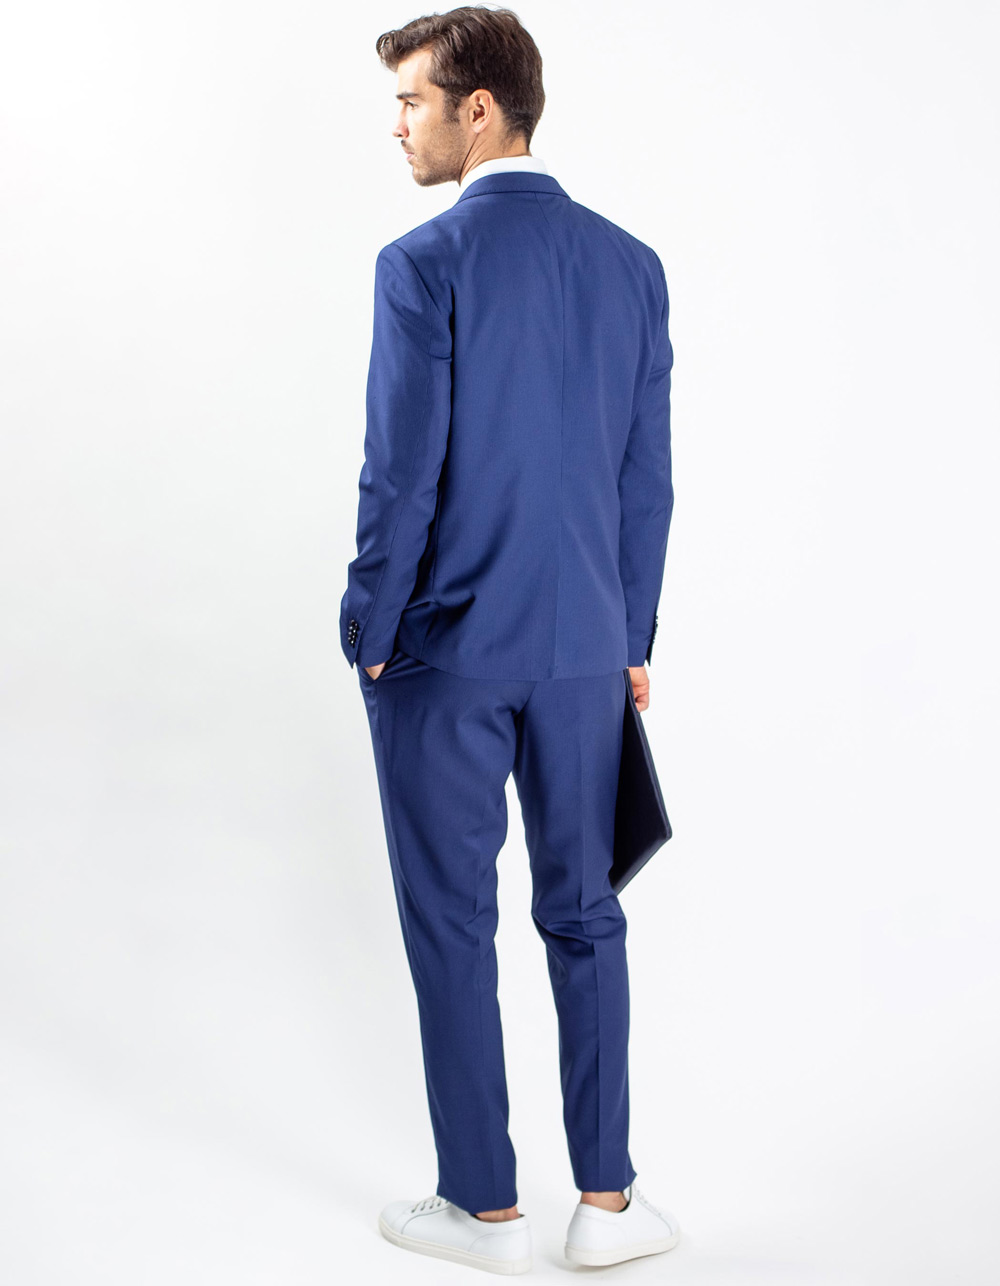 Oxford navy blue suit - Backside